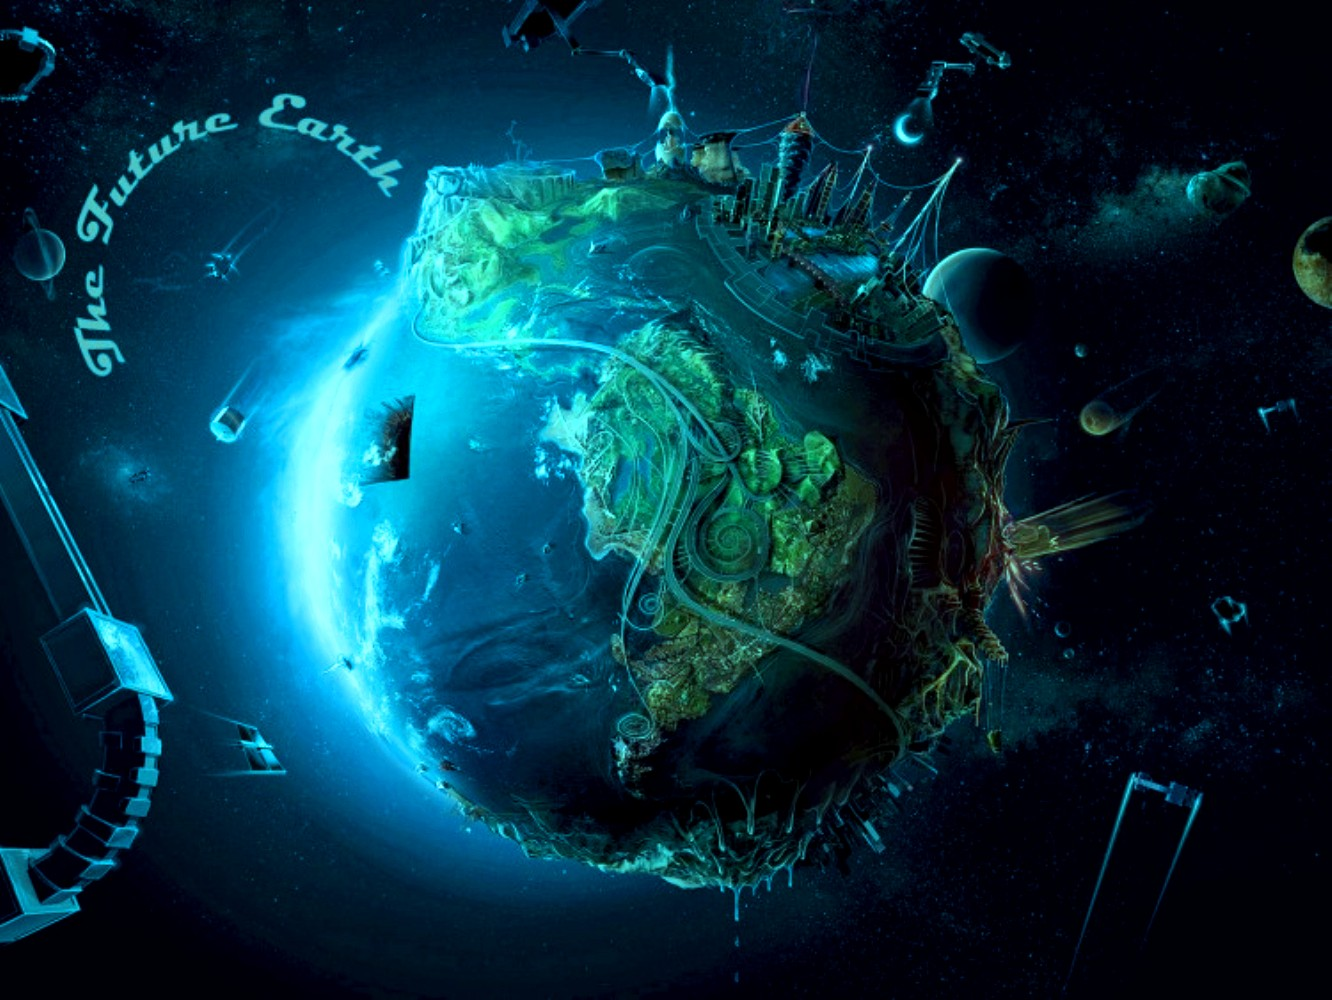 Future earth computer wallpapers desktop backgrounds 1332x1000 id